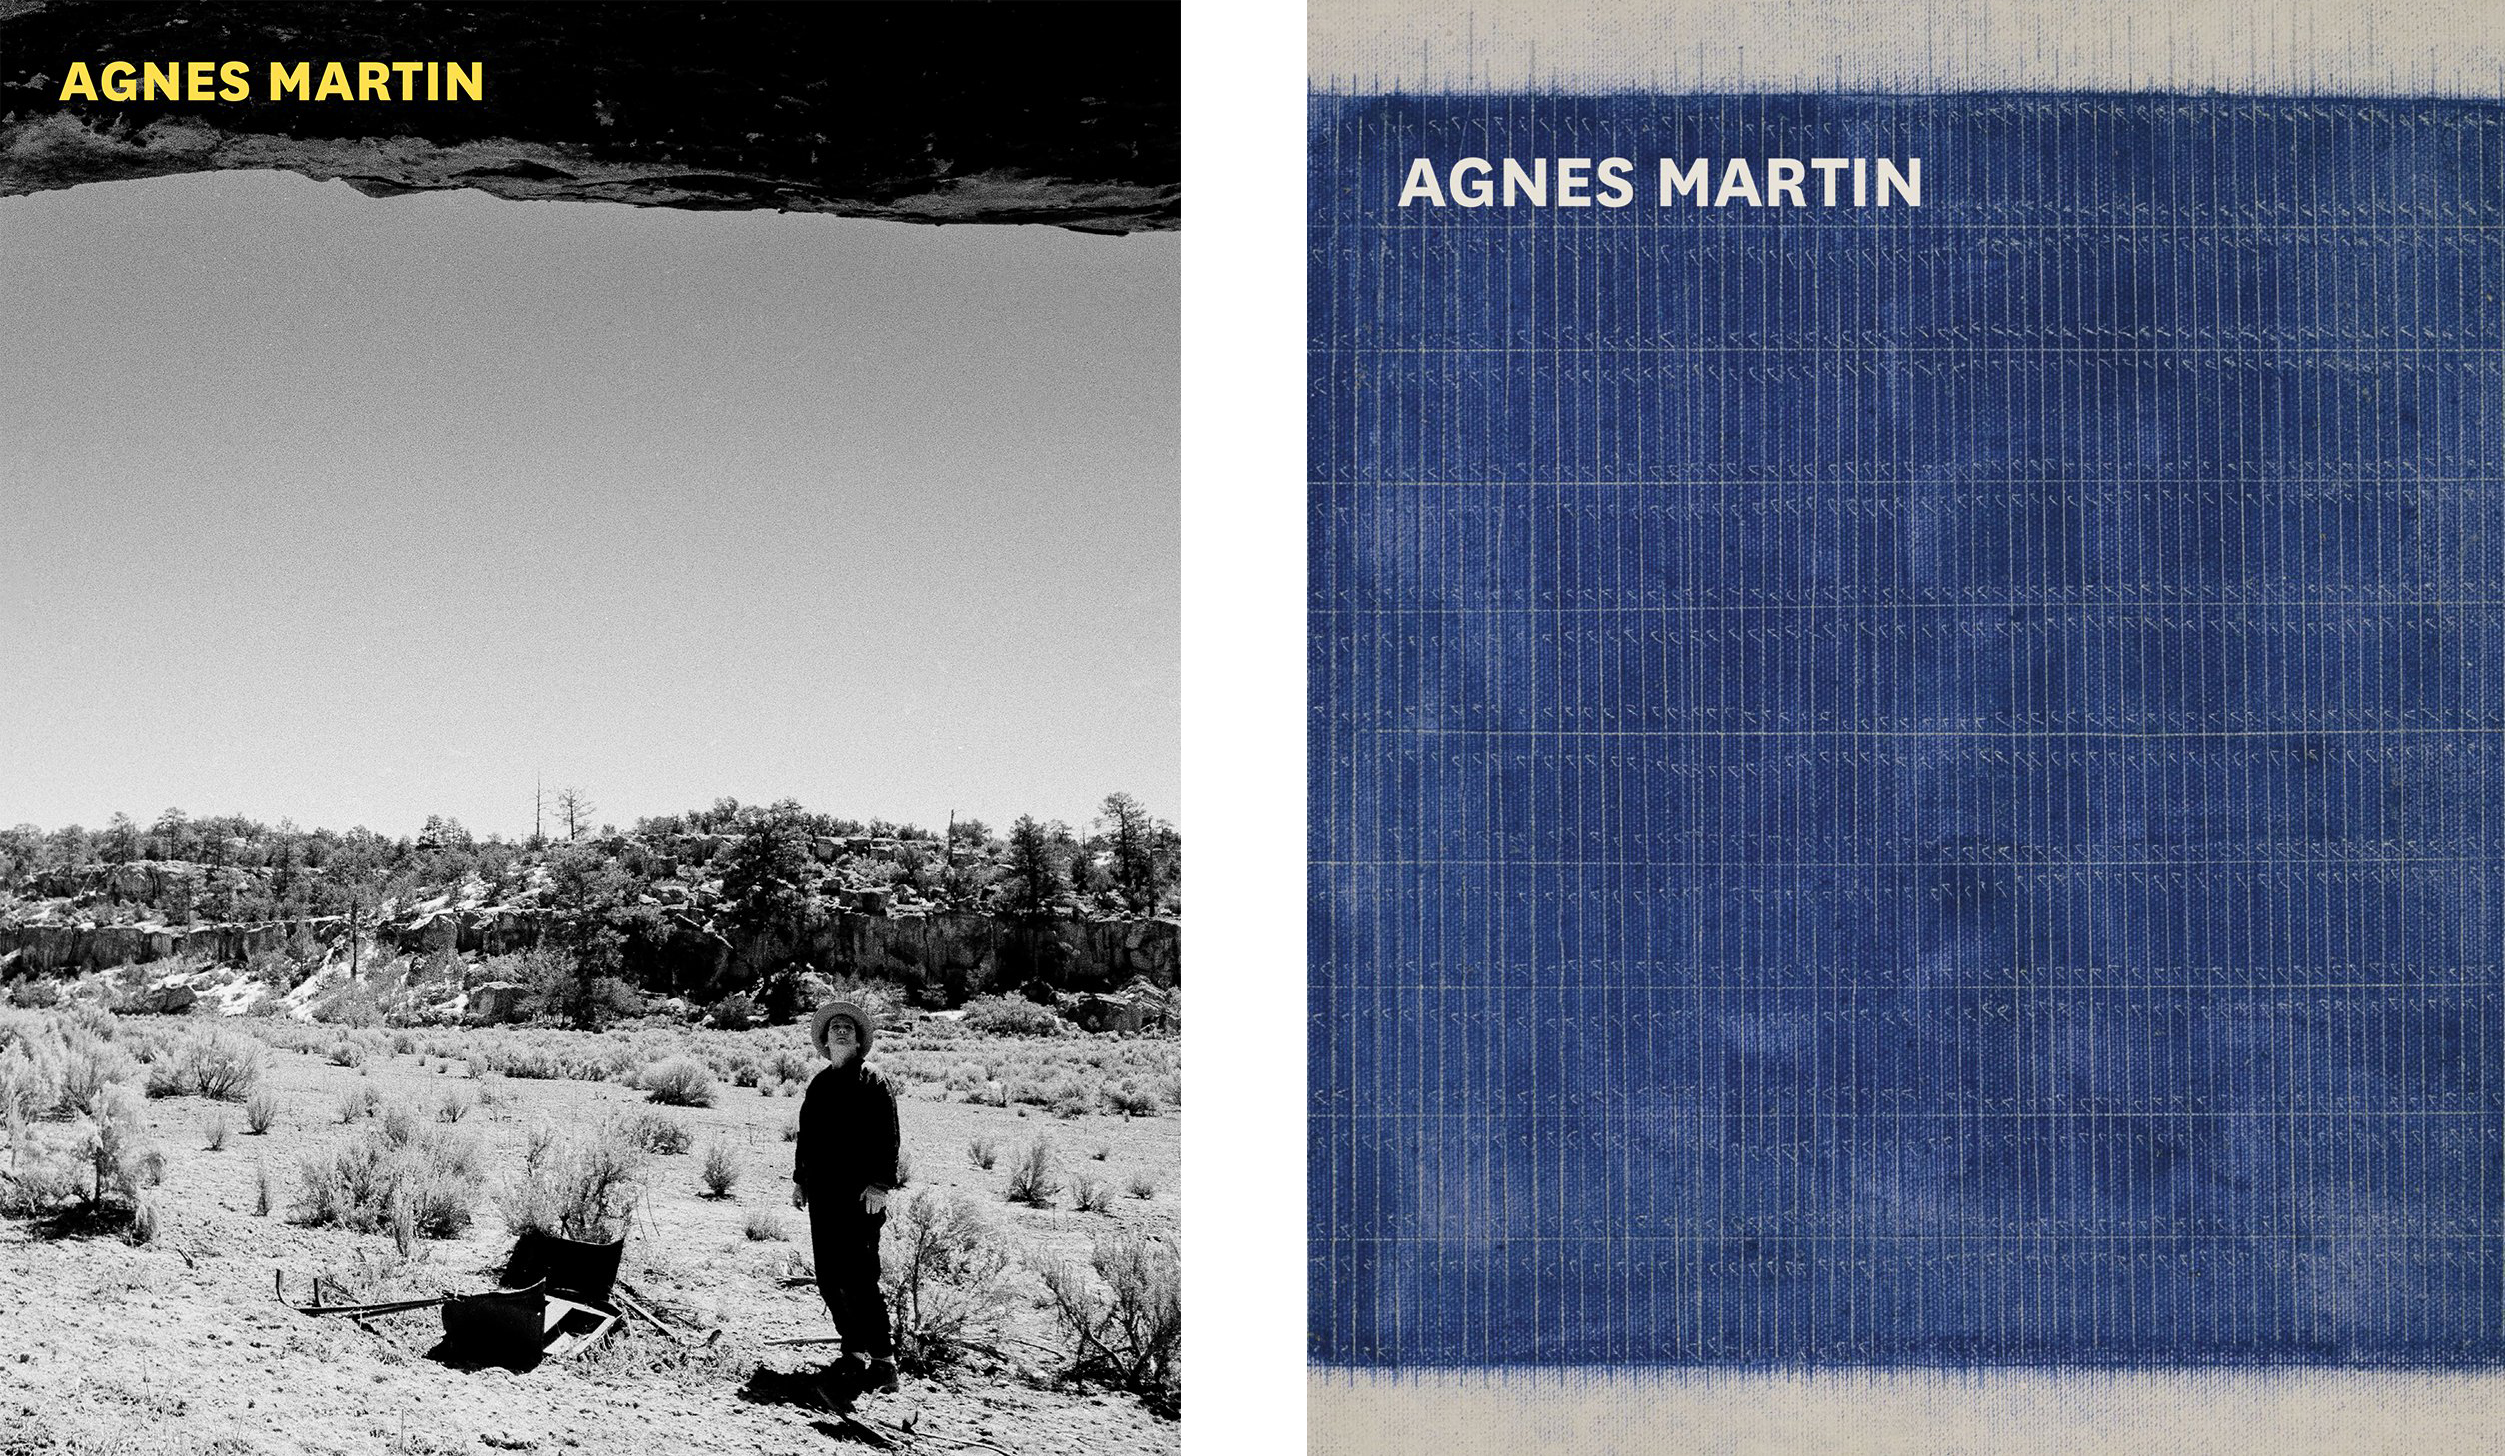 martin_book_covers.jpg